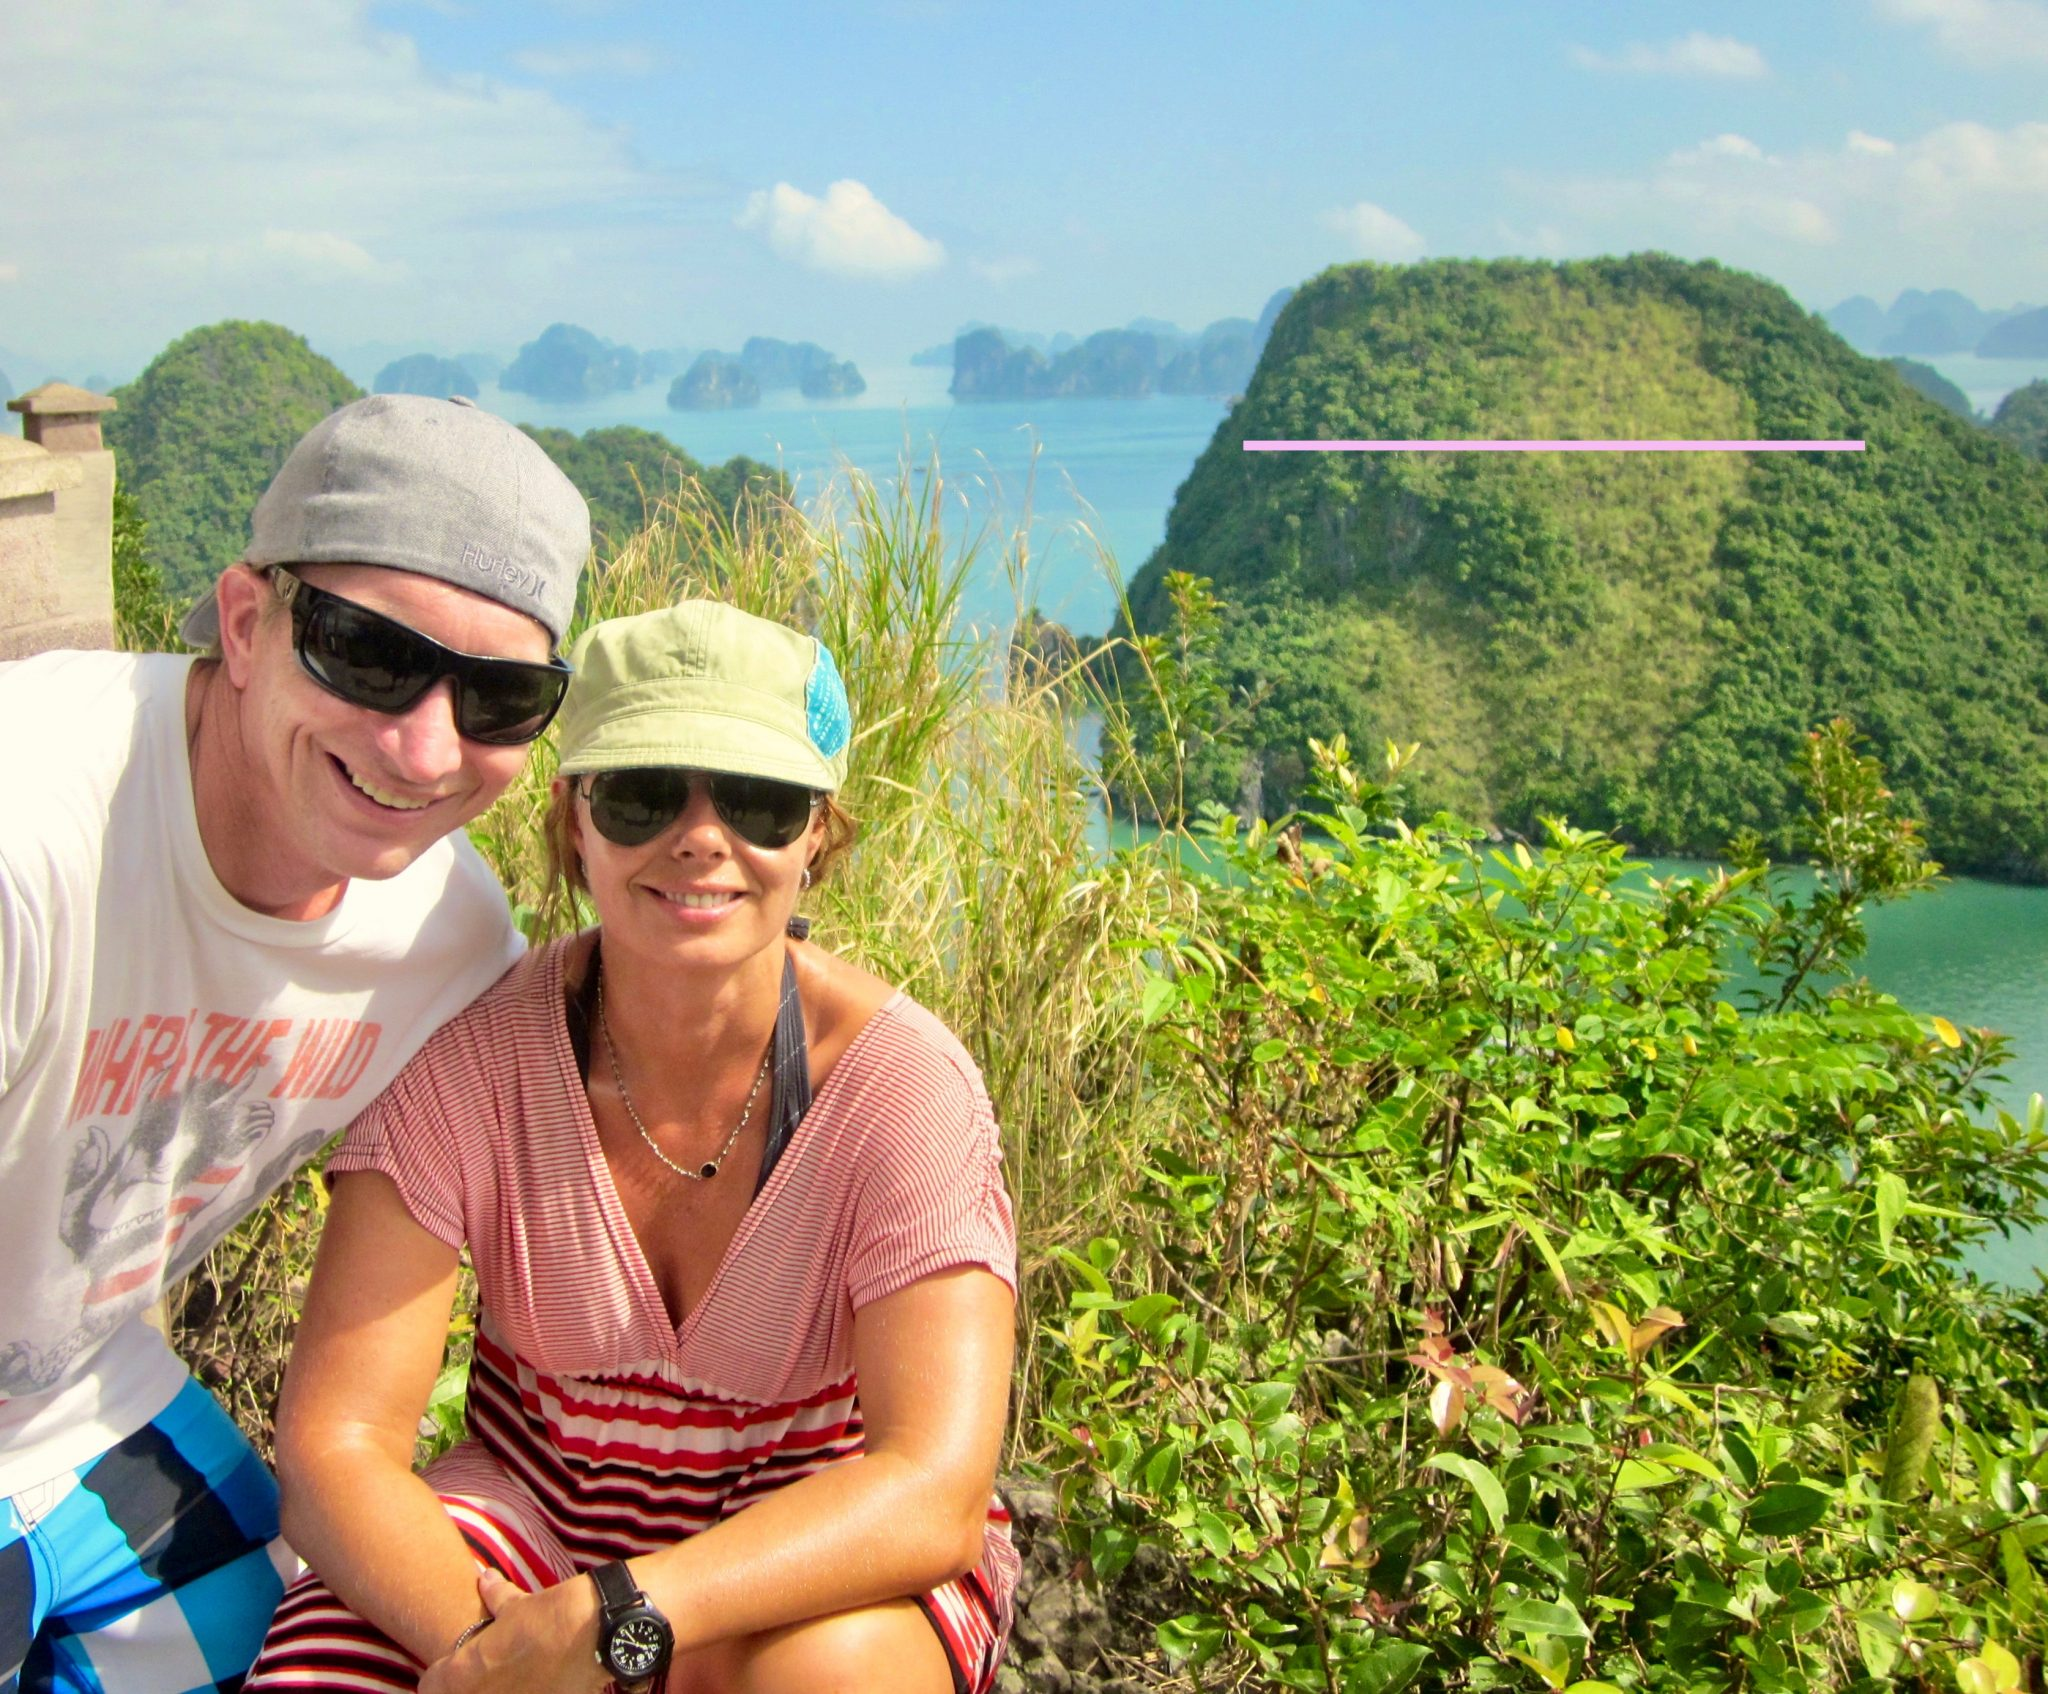 Halong Bay - The hike to the top of an island was stunning